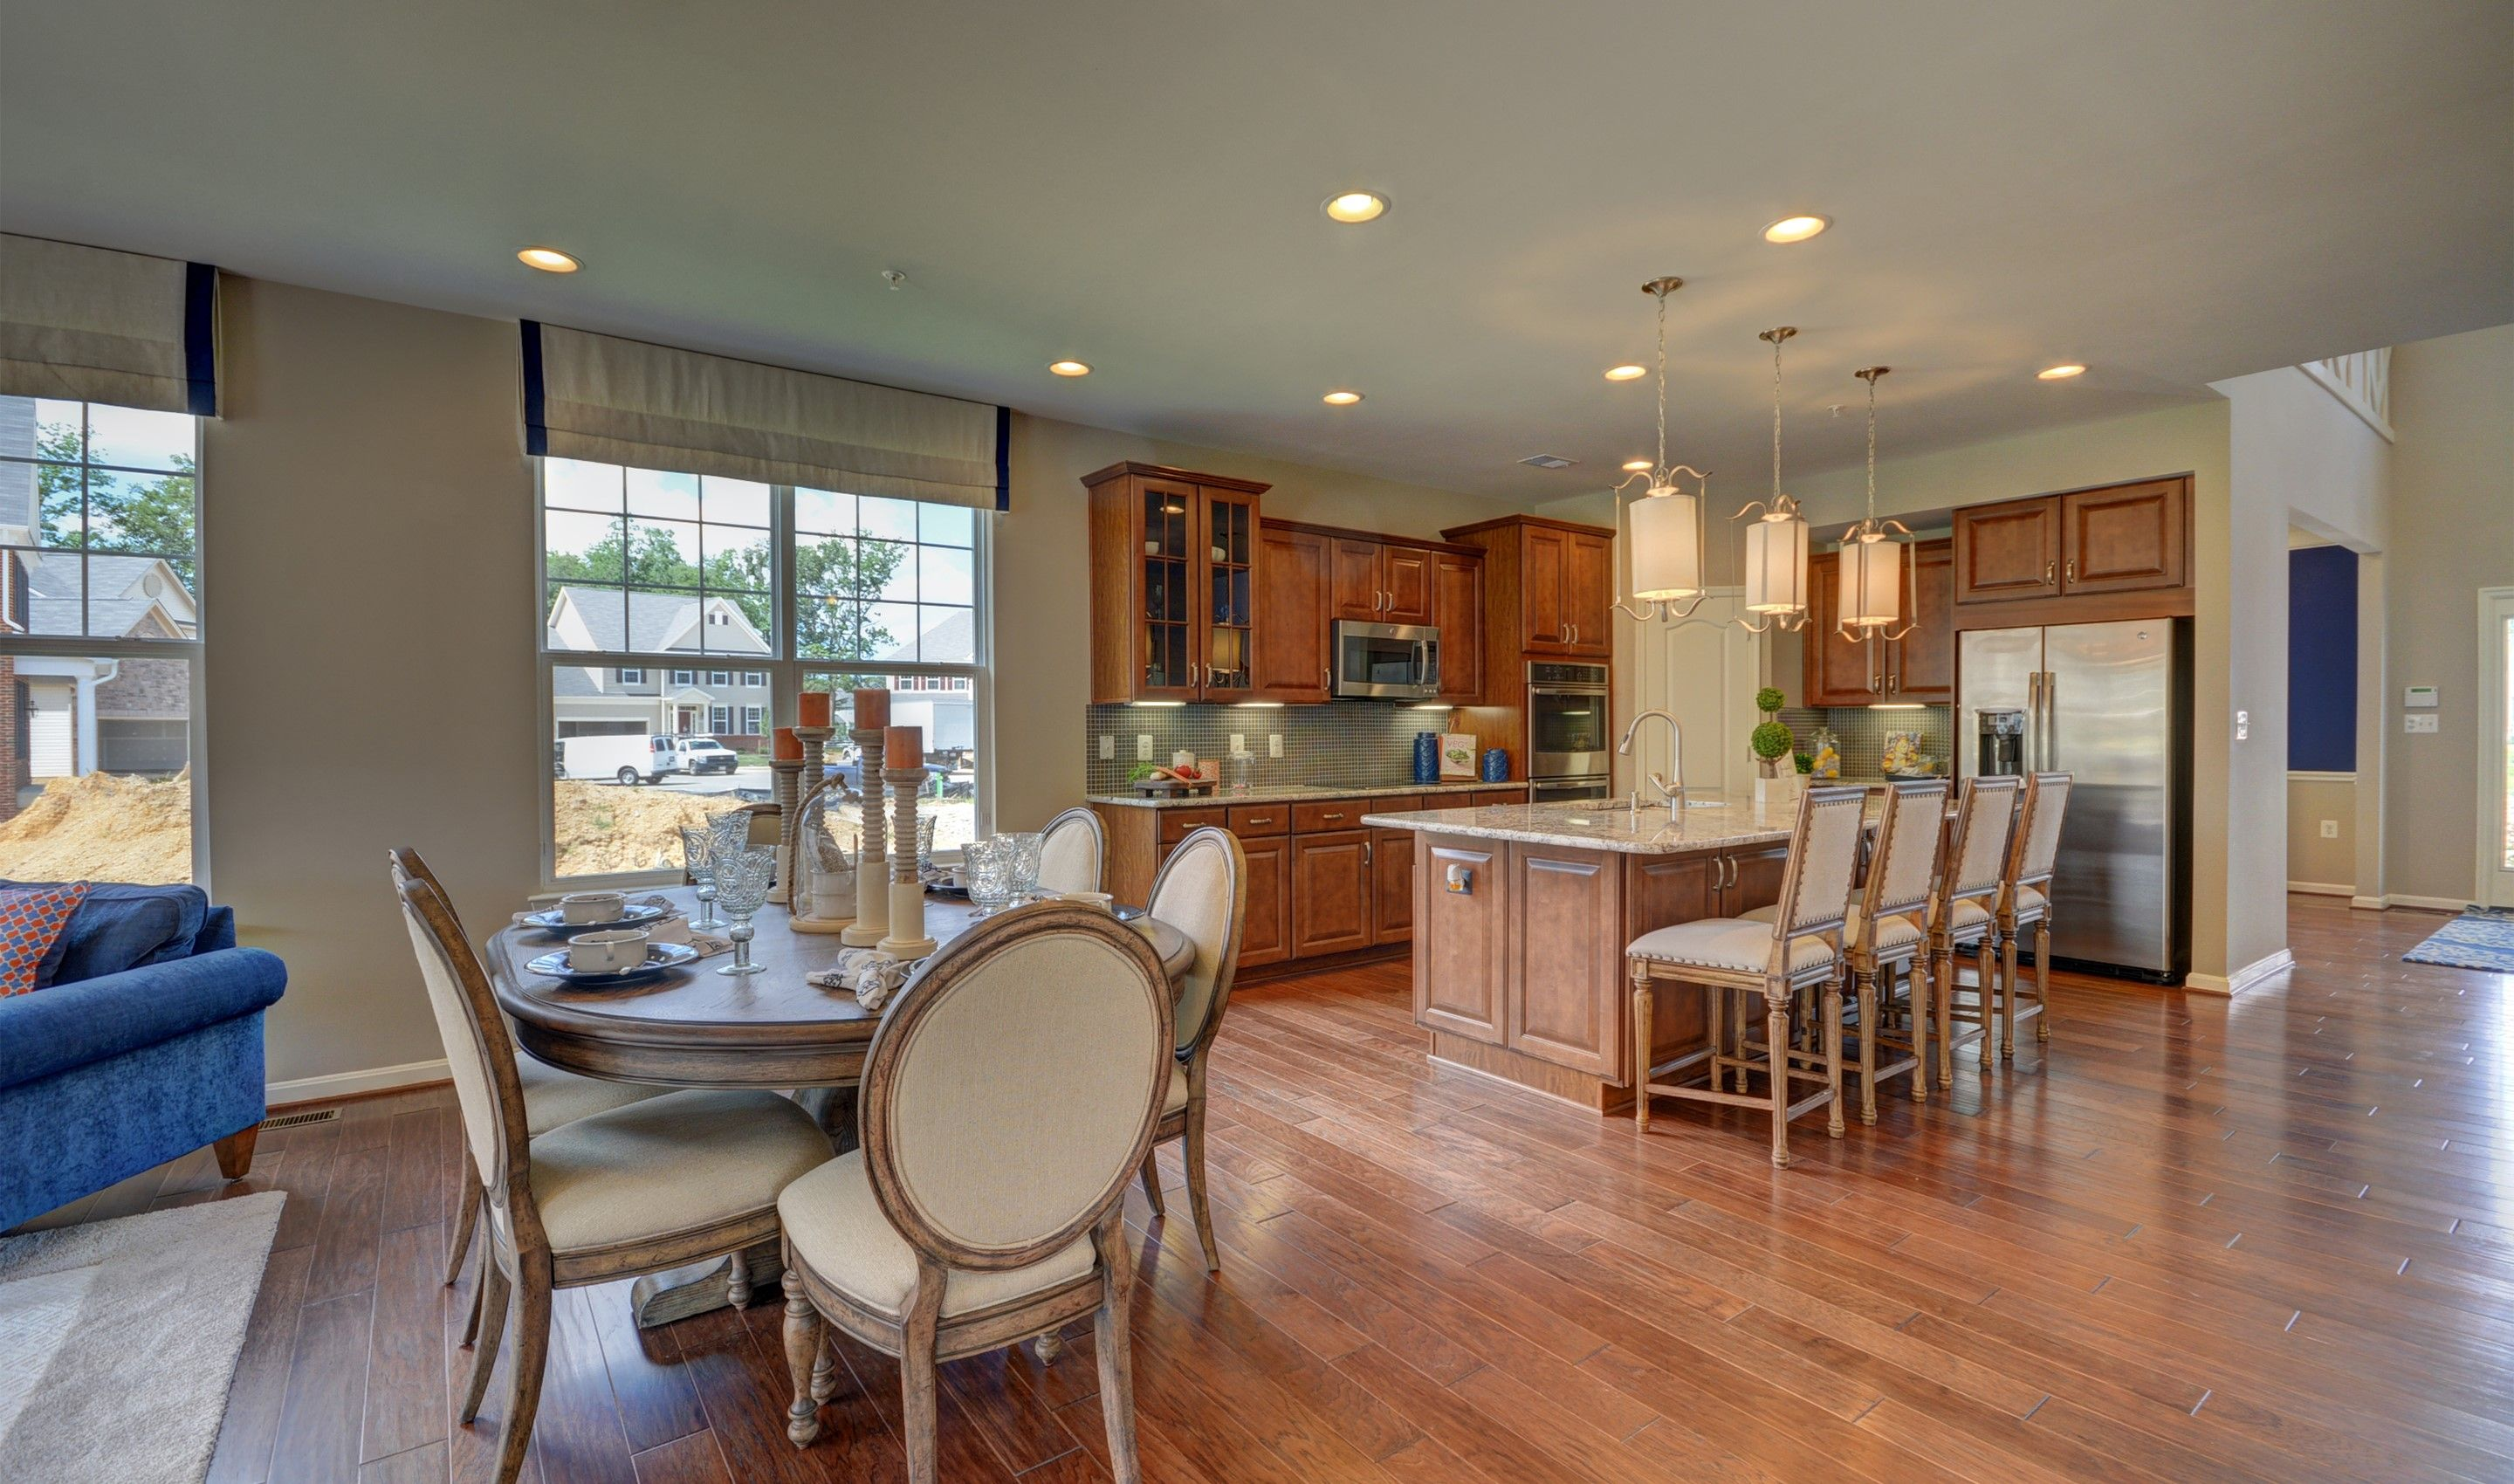 Kitchen featured in the Callahan By K. Hovnanian® Homes in Savannah, GA